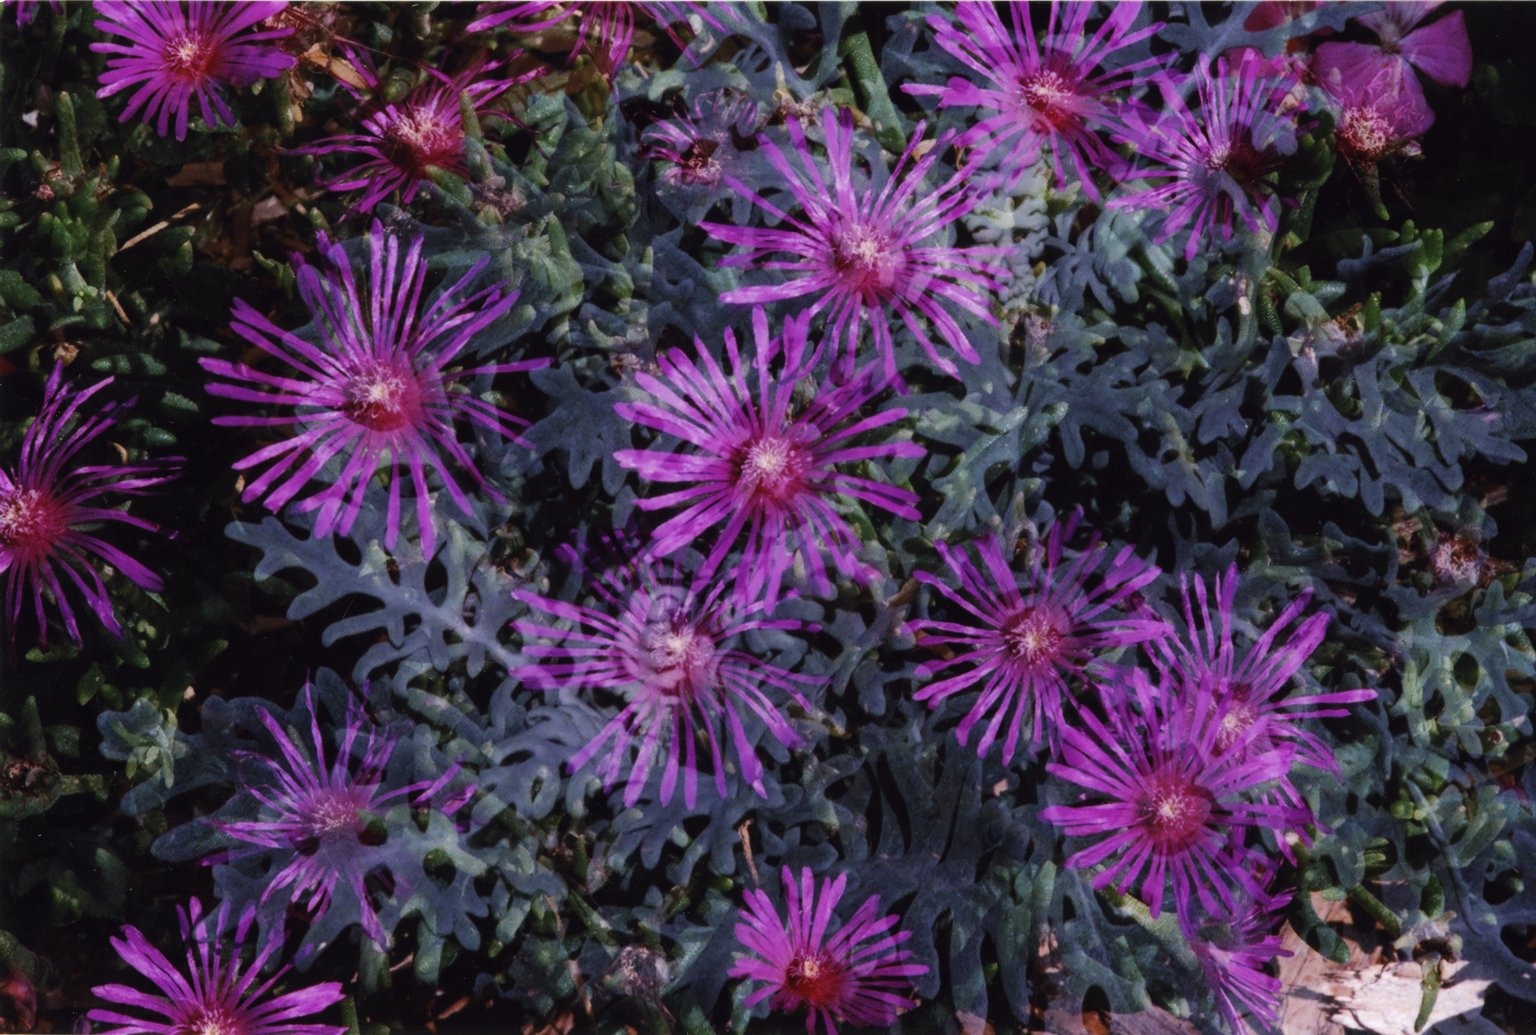 Double Exposure - Purple flowers over green plants